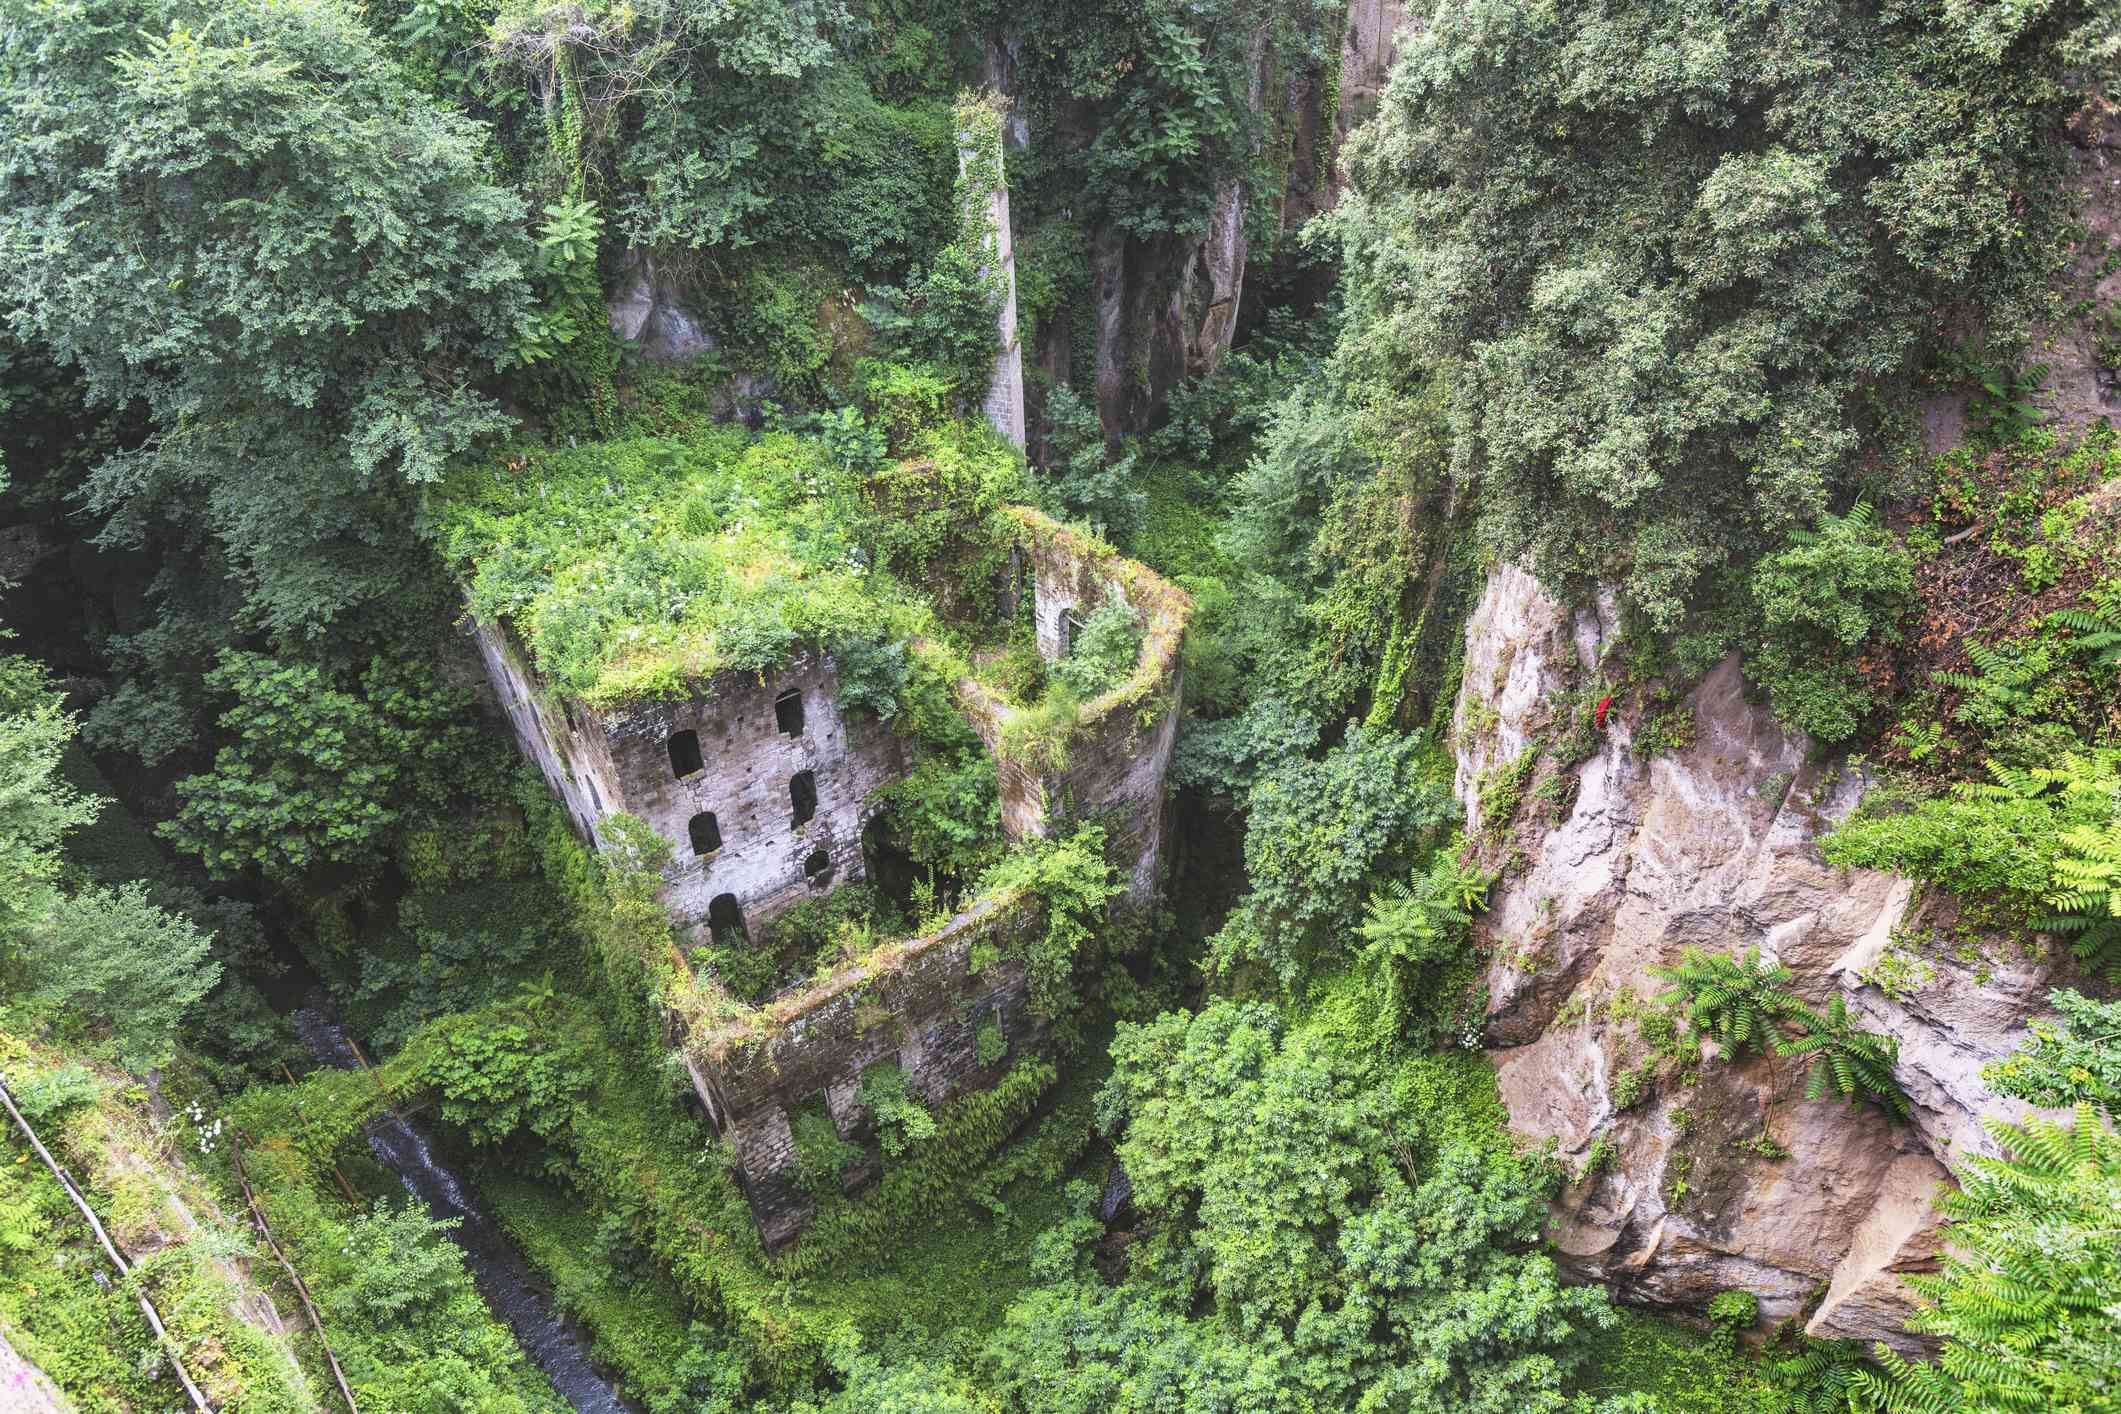 Abandoned mill covered in greenery